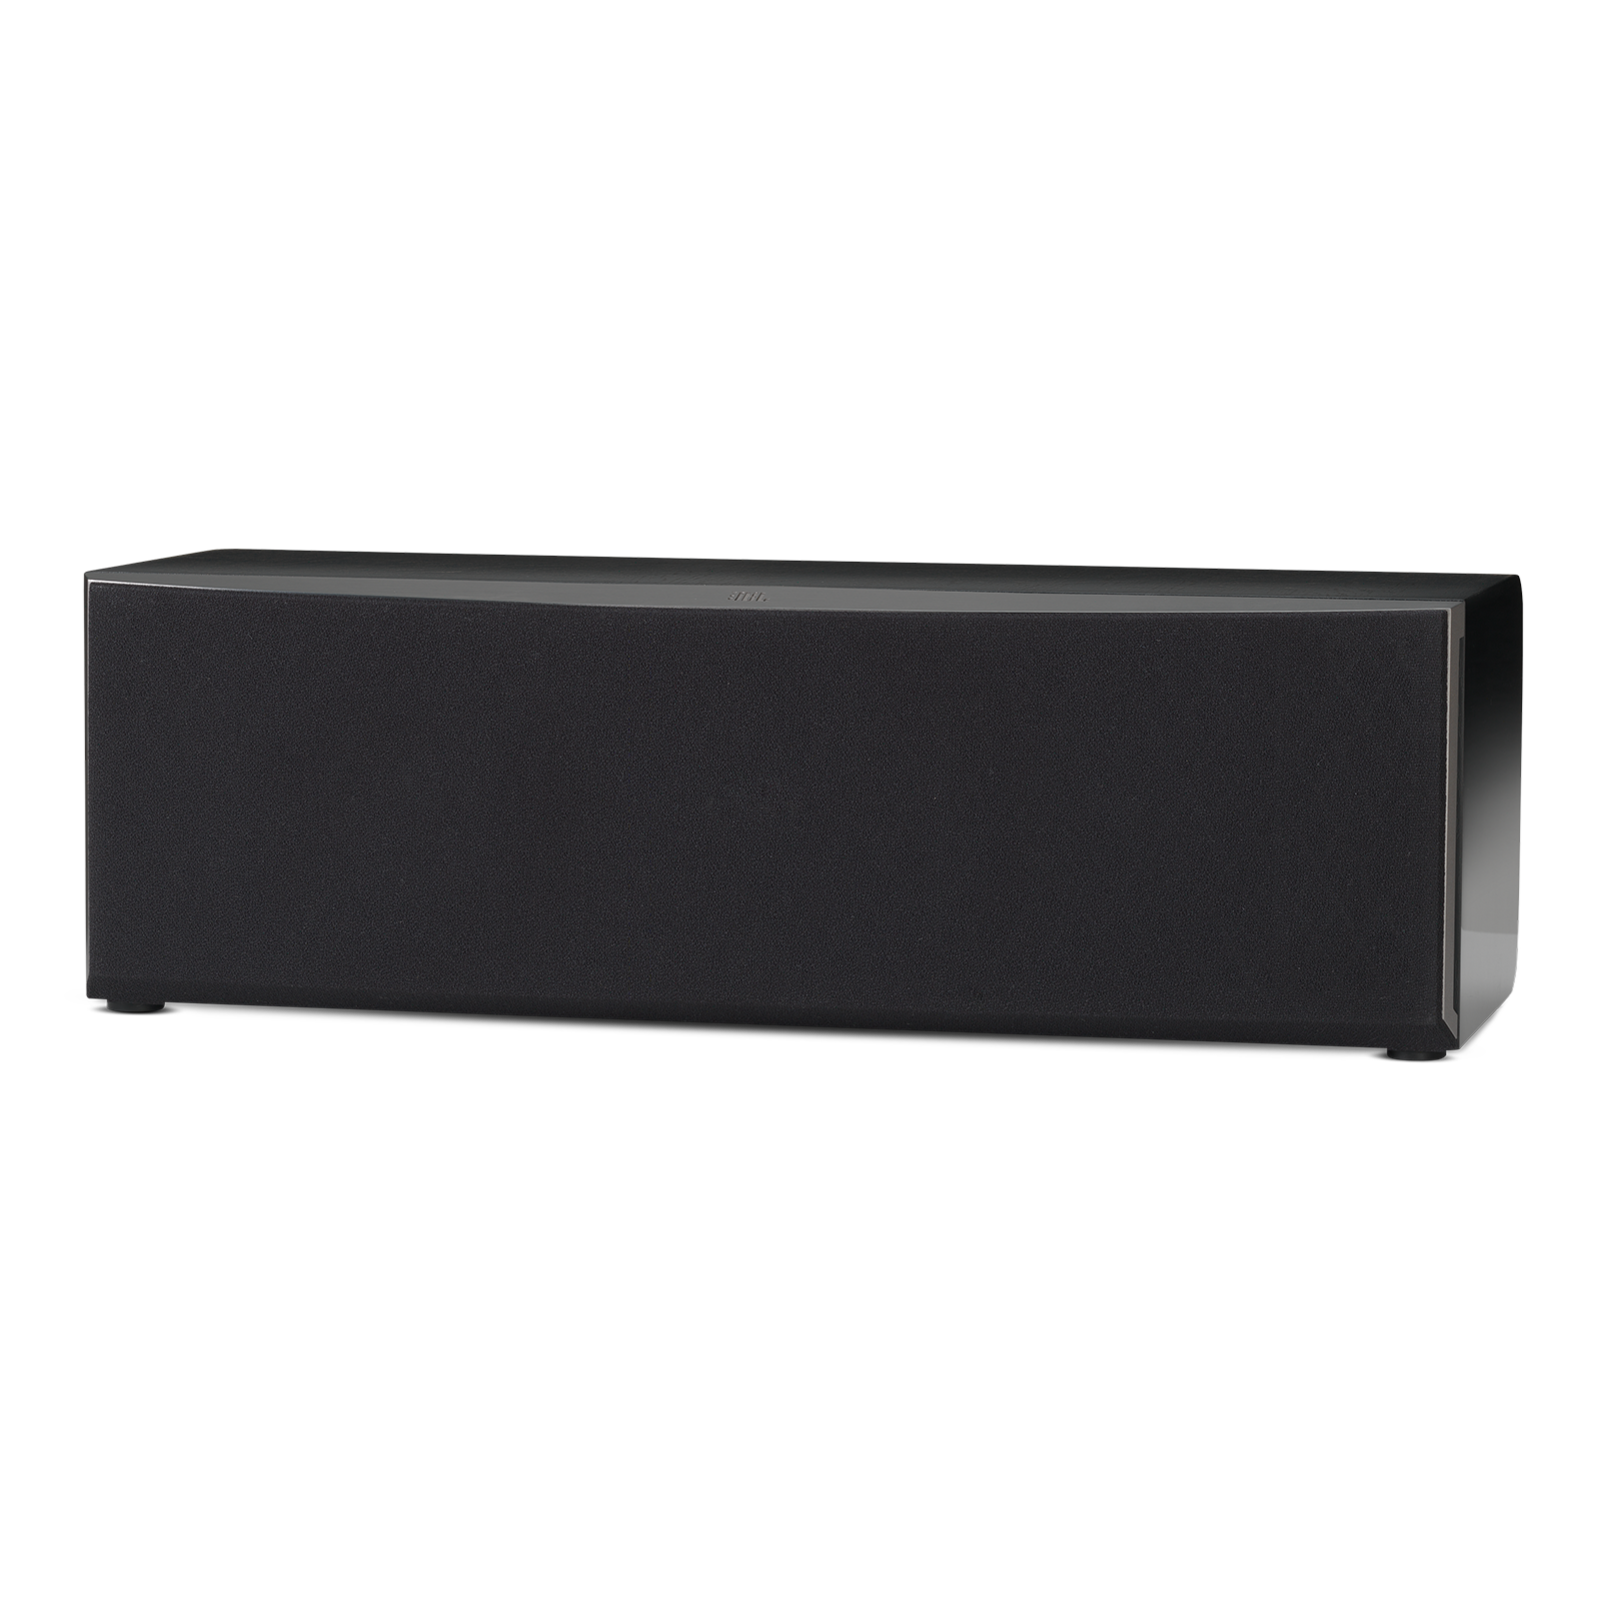 Innovative Front Projection Screen Broad further B0014MW056 additionally STUDIO 225C moreover Unboxed Oneaudio Onemicro  puter Speakers further Subwoofer Connection Guide. on theater research speakers car audio